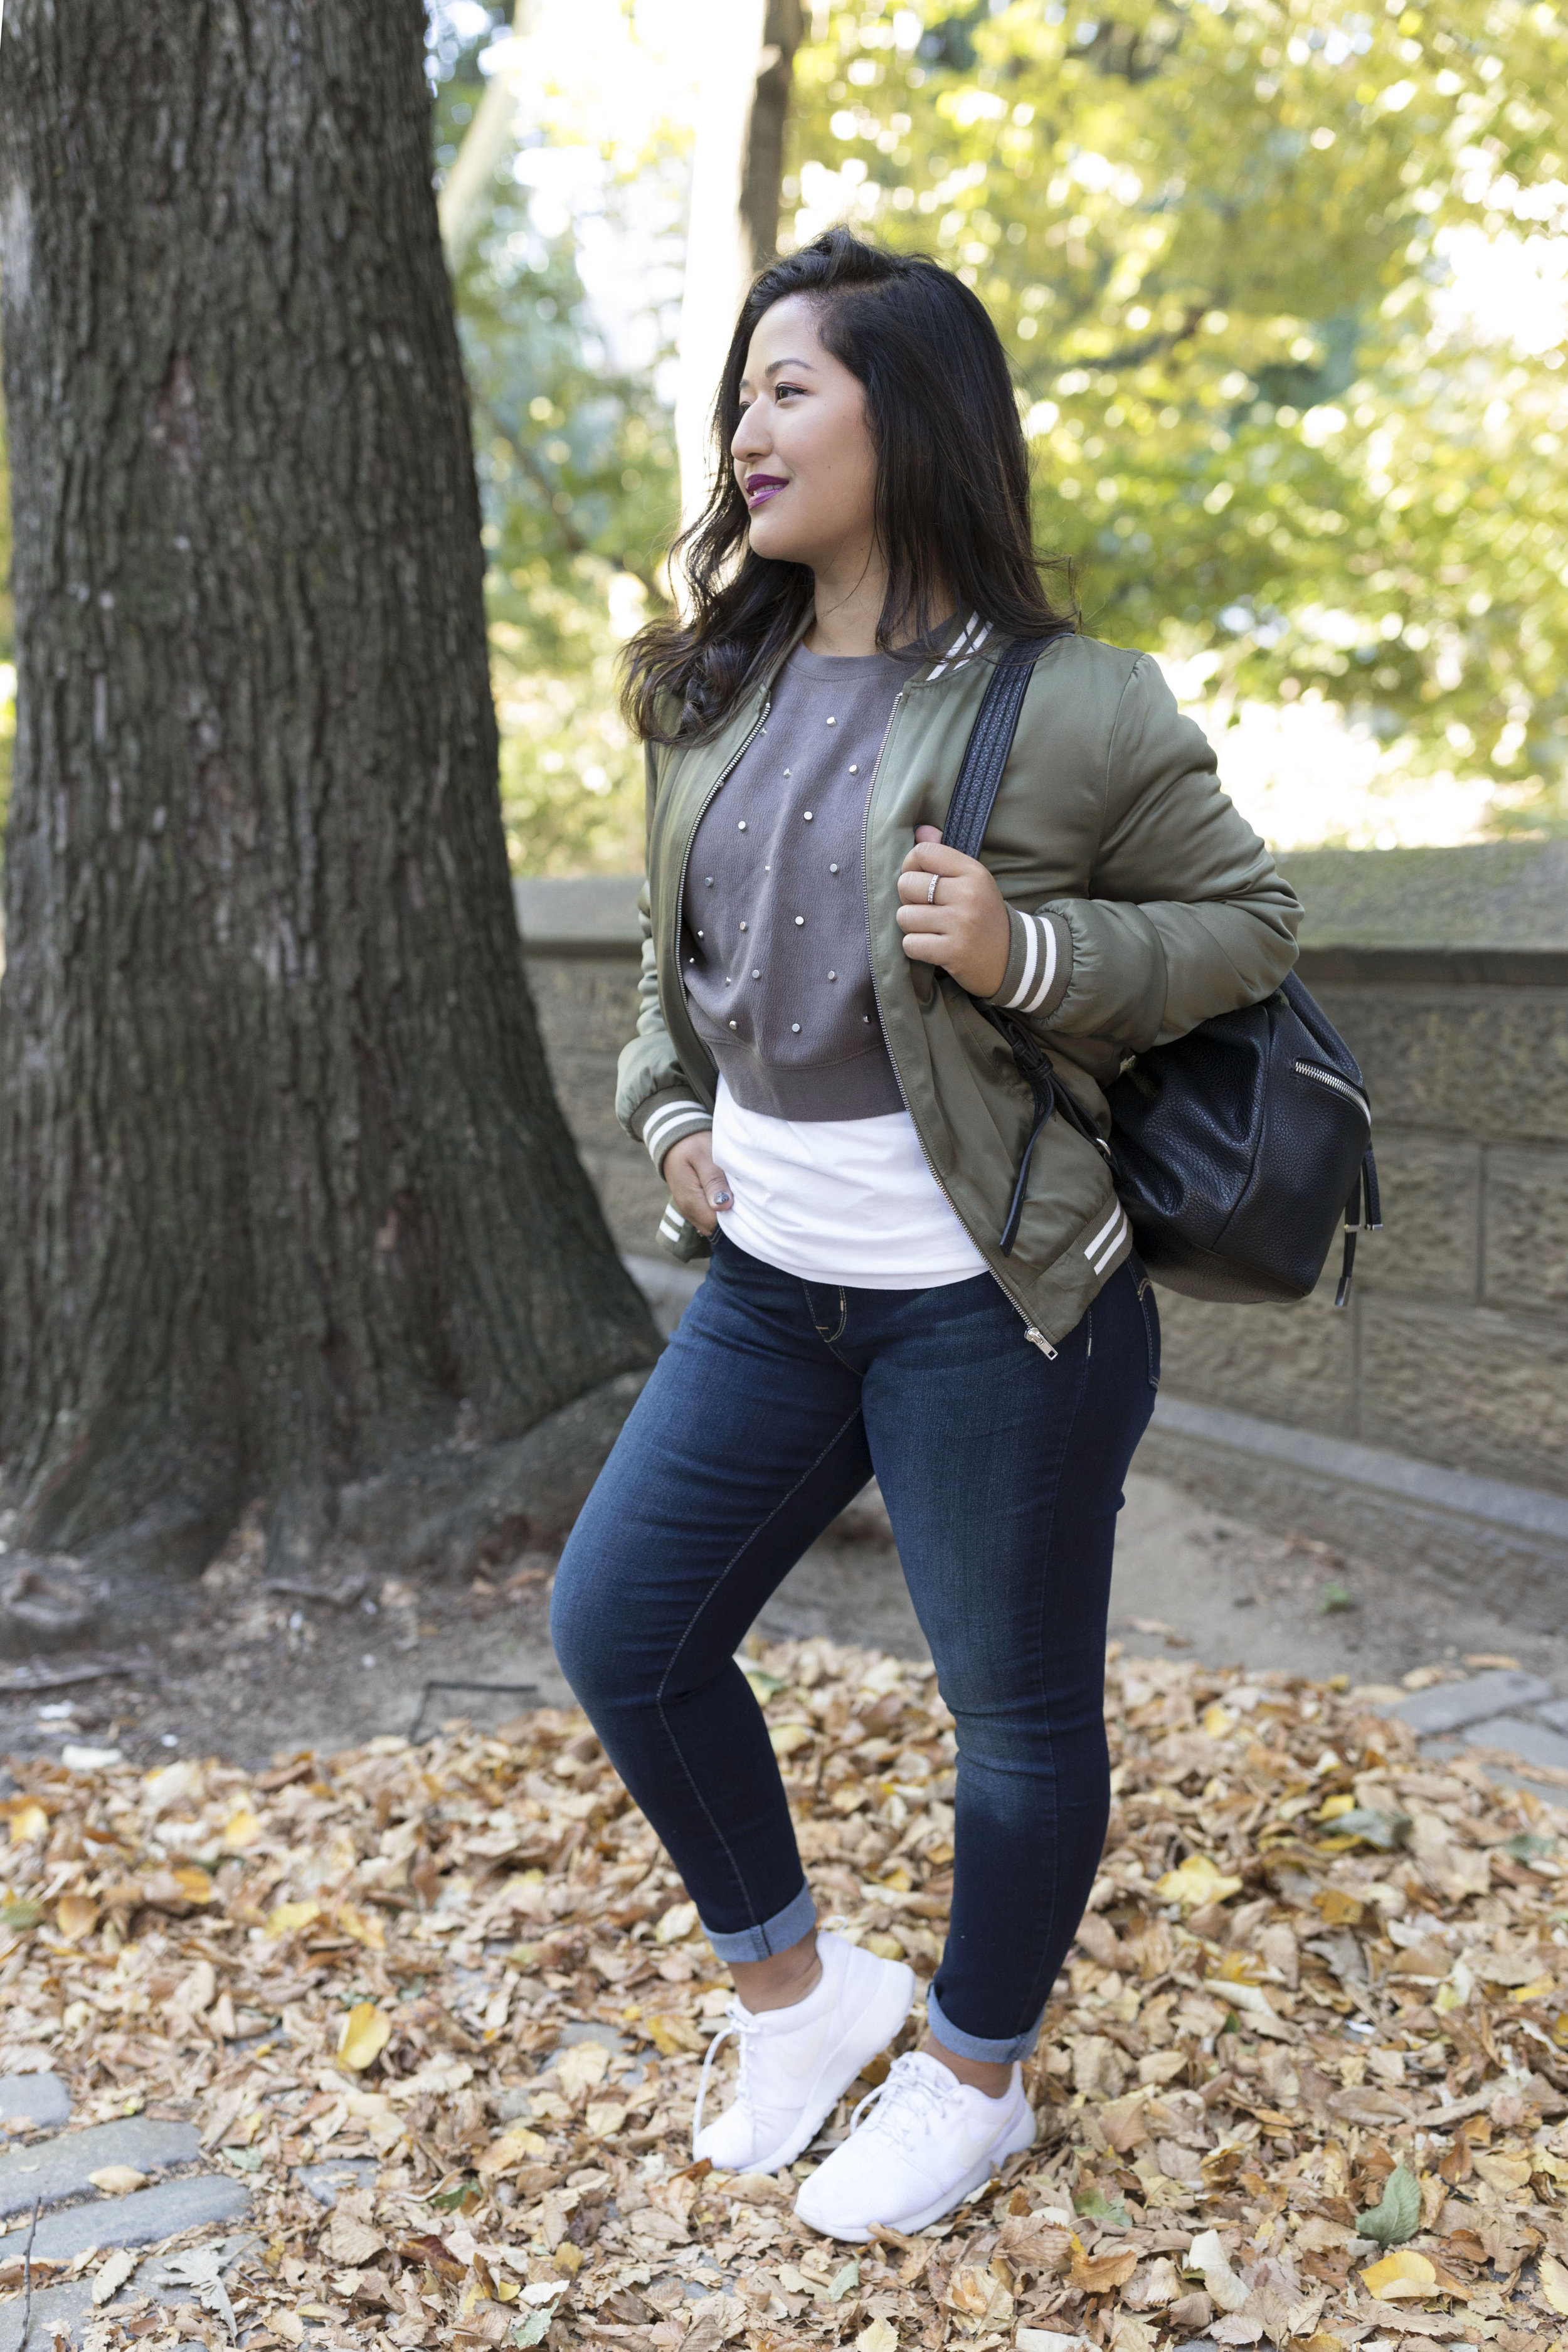 Krity S Walmart Signature Levi Denim Modern Skinny Jeans Weekend Outfit